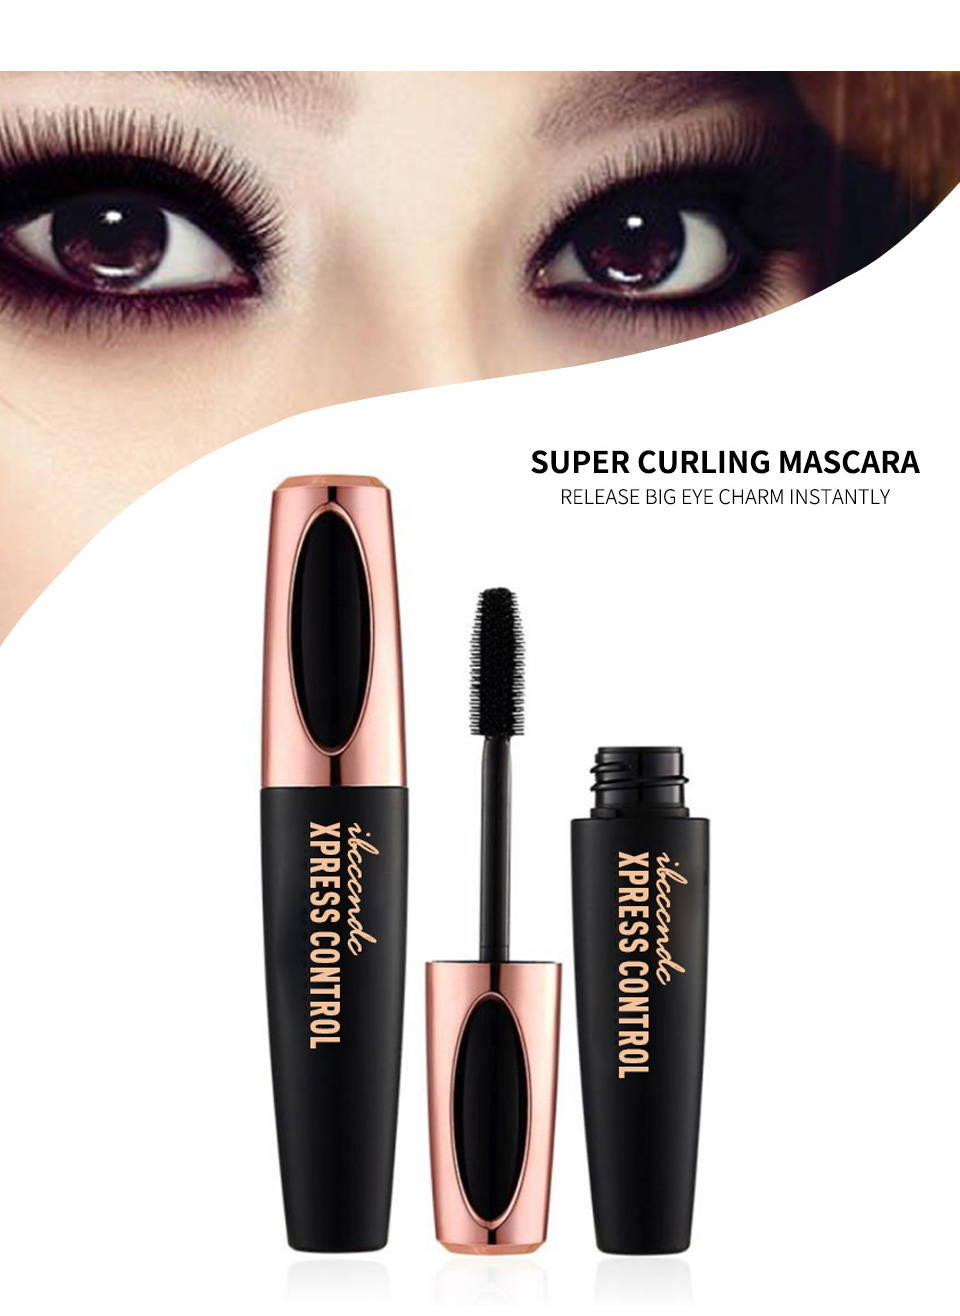 c46361aed81 Your luscious lashes will stay put all day long and can be removed with  gentle cleansers when you are ready!